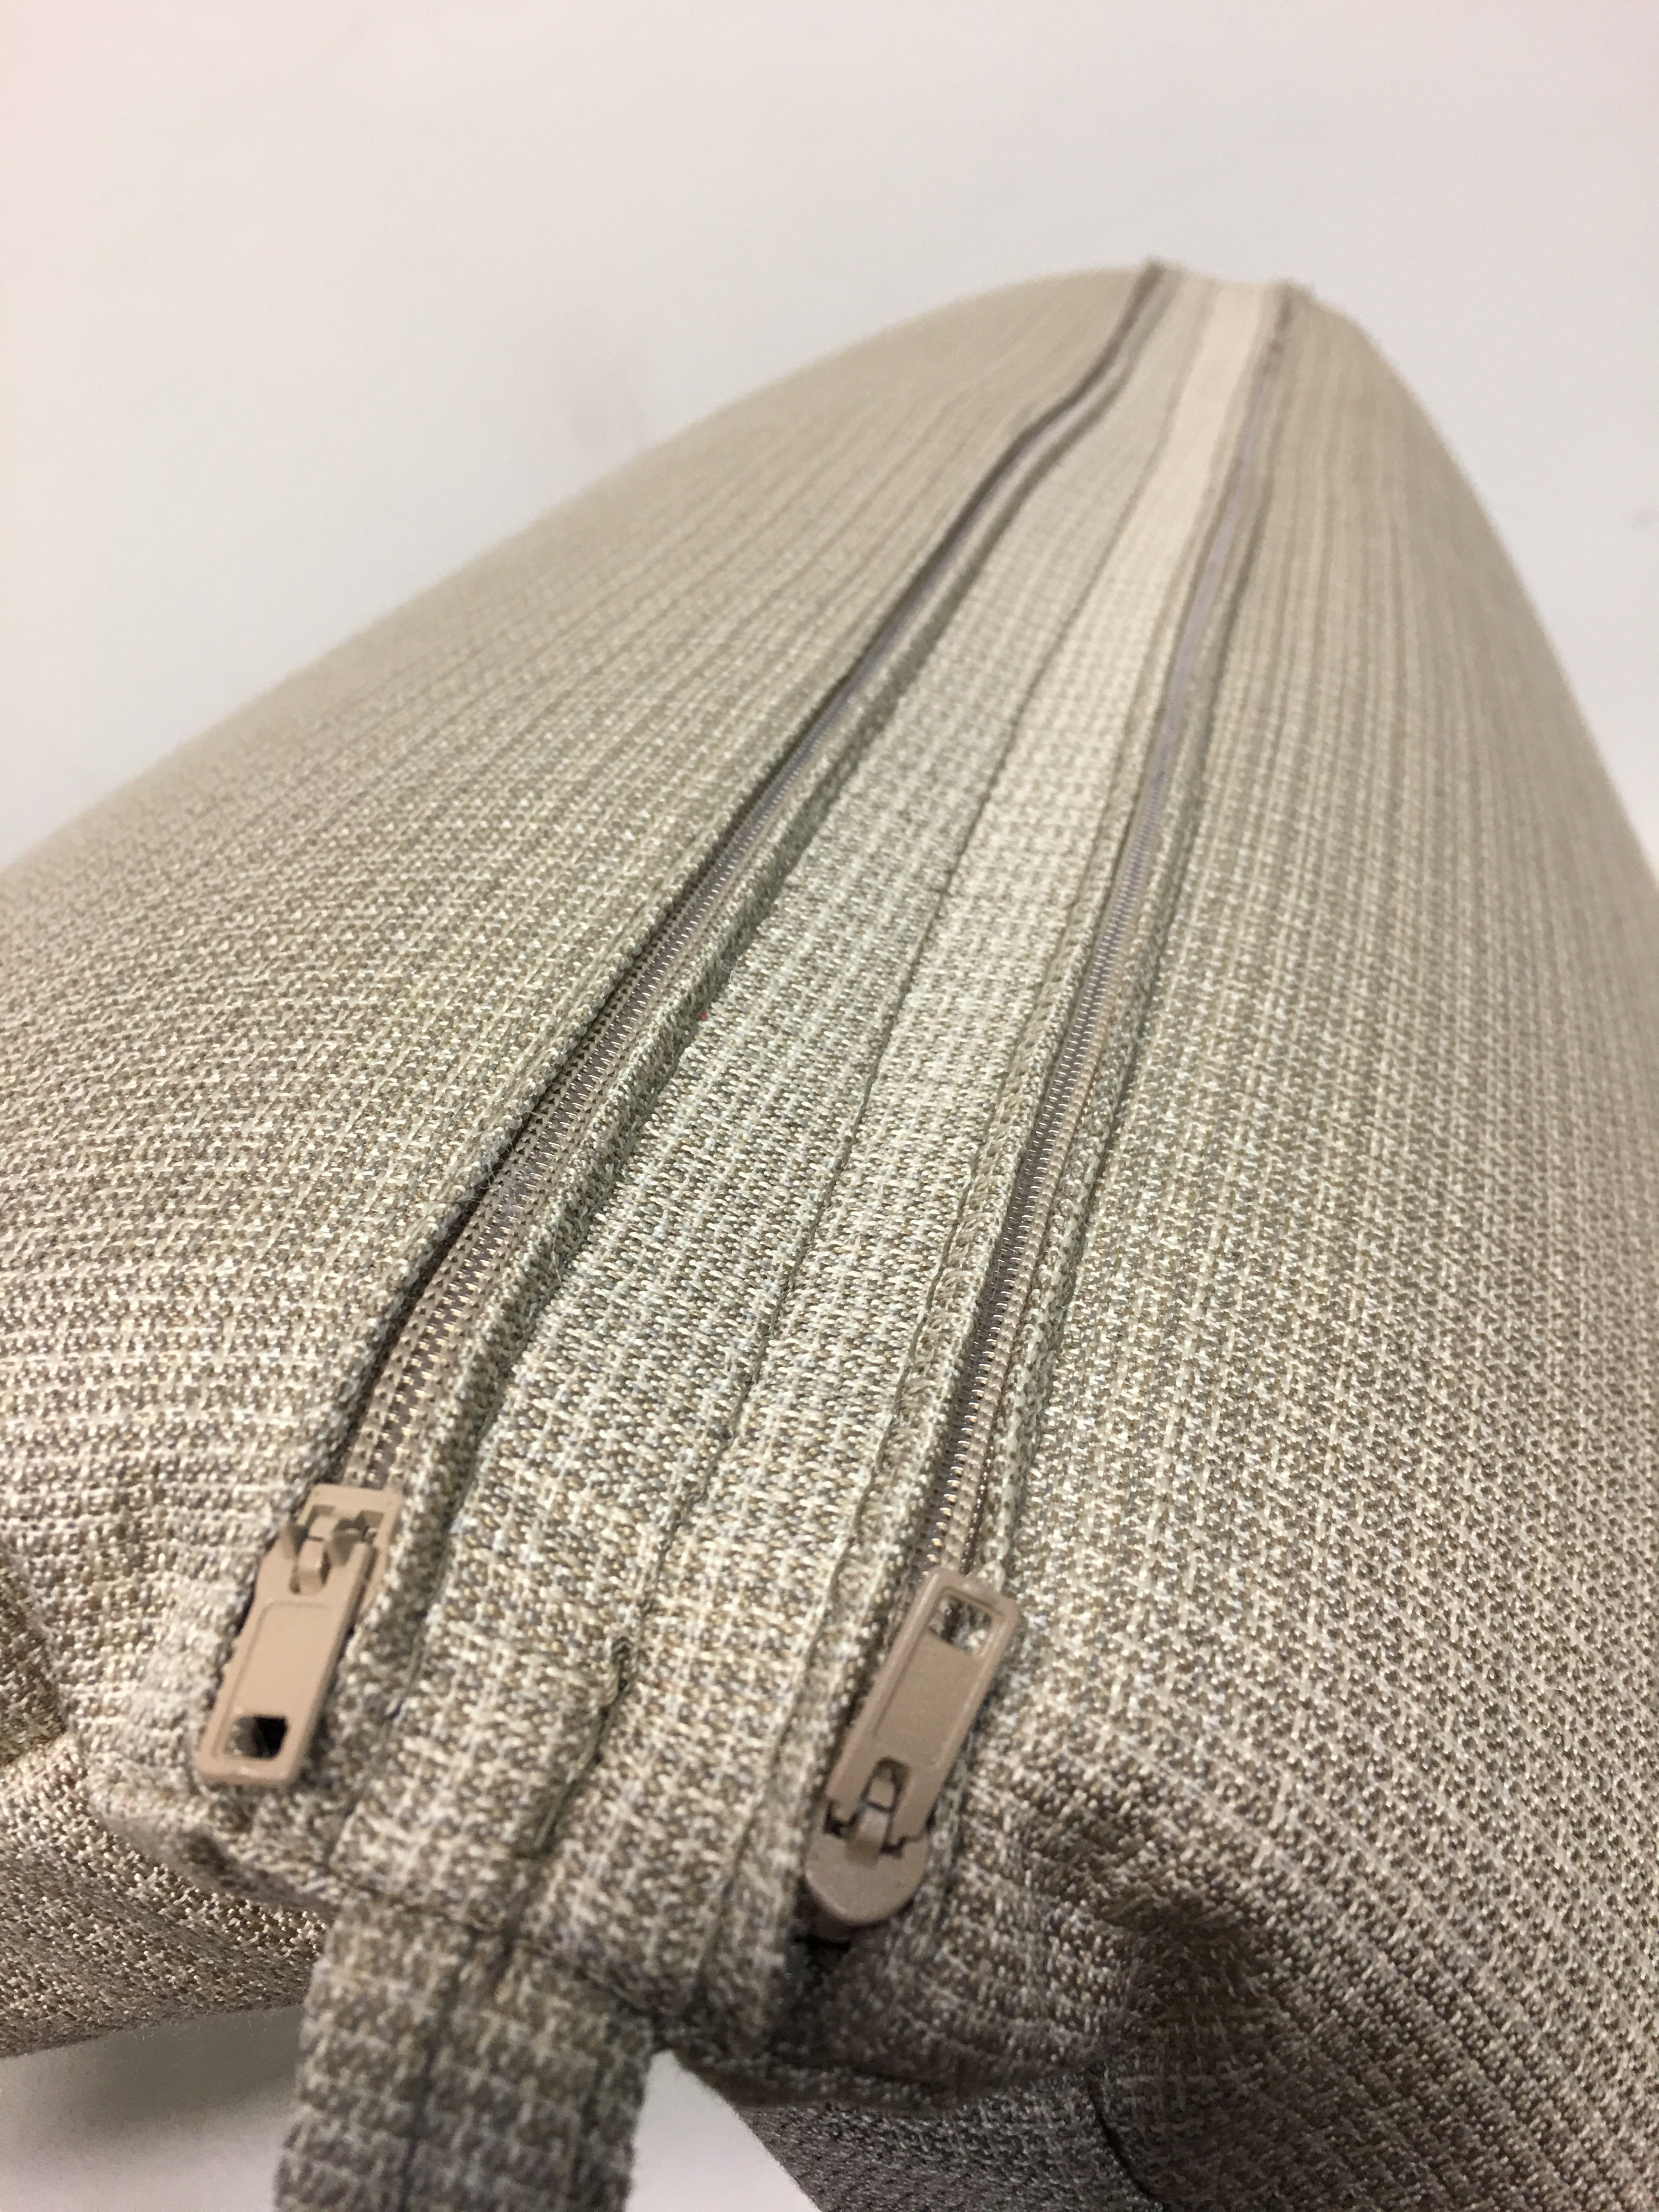 1 piece hinged 22w x 44 x 4 Stock fabric Sunbrella Malabar